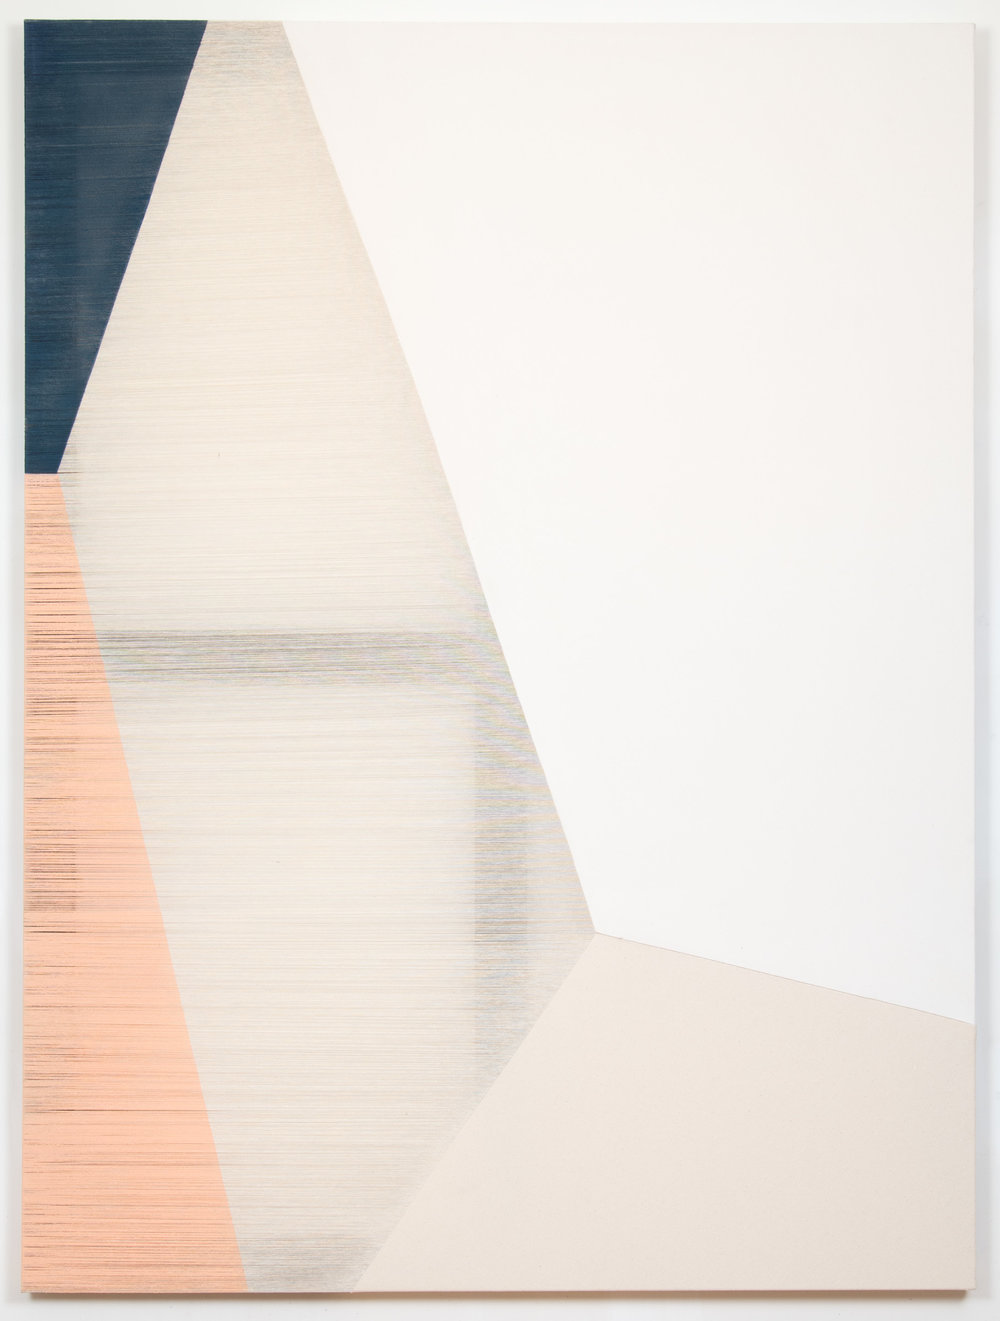 salience  2014 acrylic on stitched canvas 60 in x 45 in